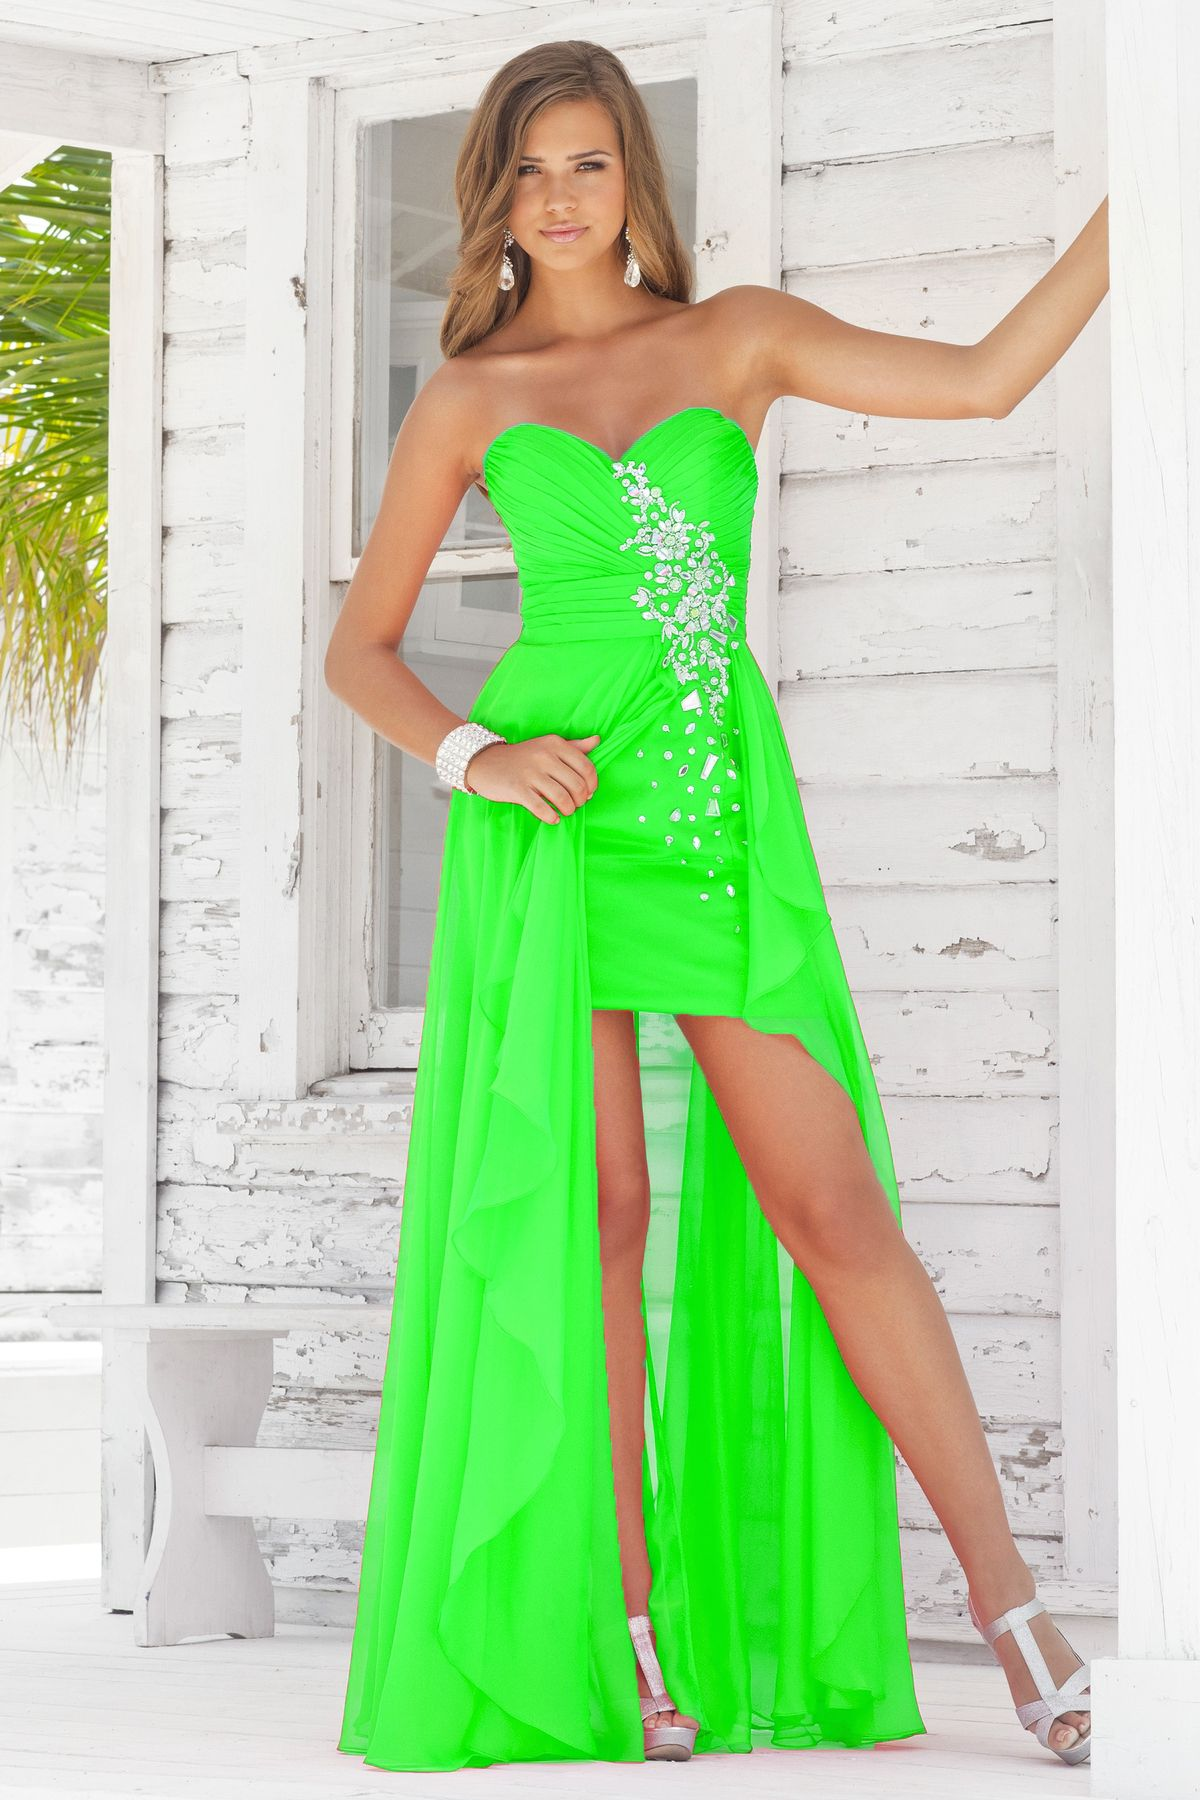 17 Best images about Dresses on Pinterest  Long prom dresses ...